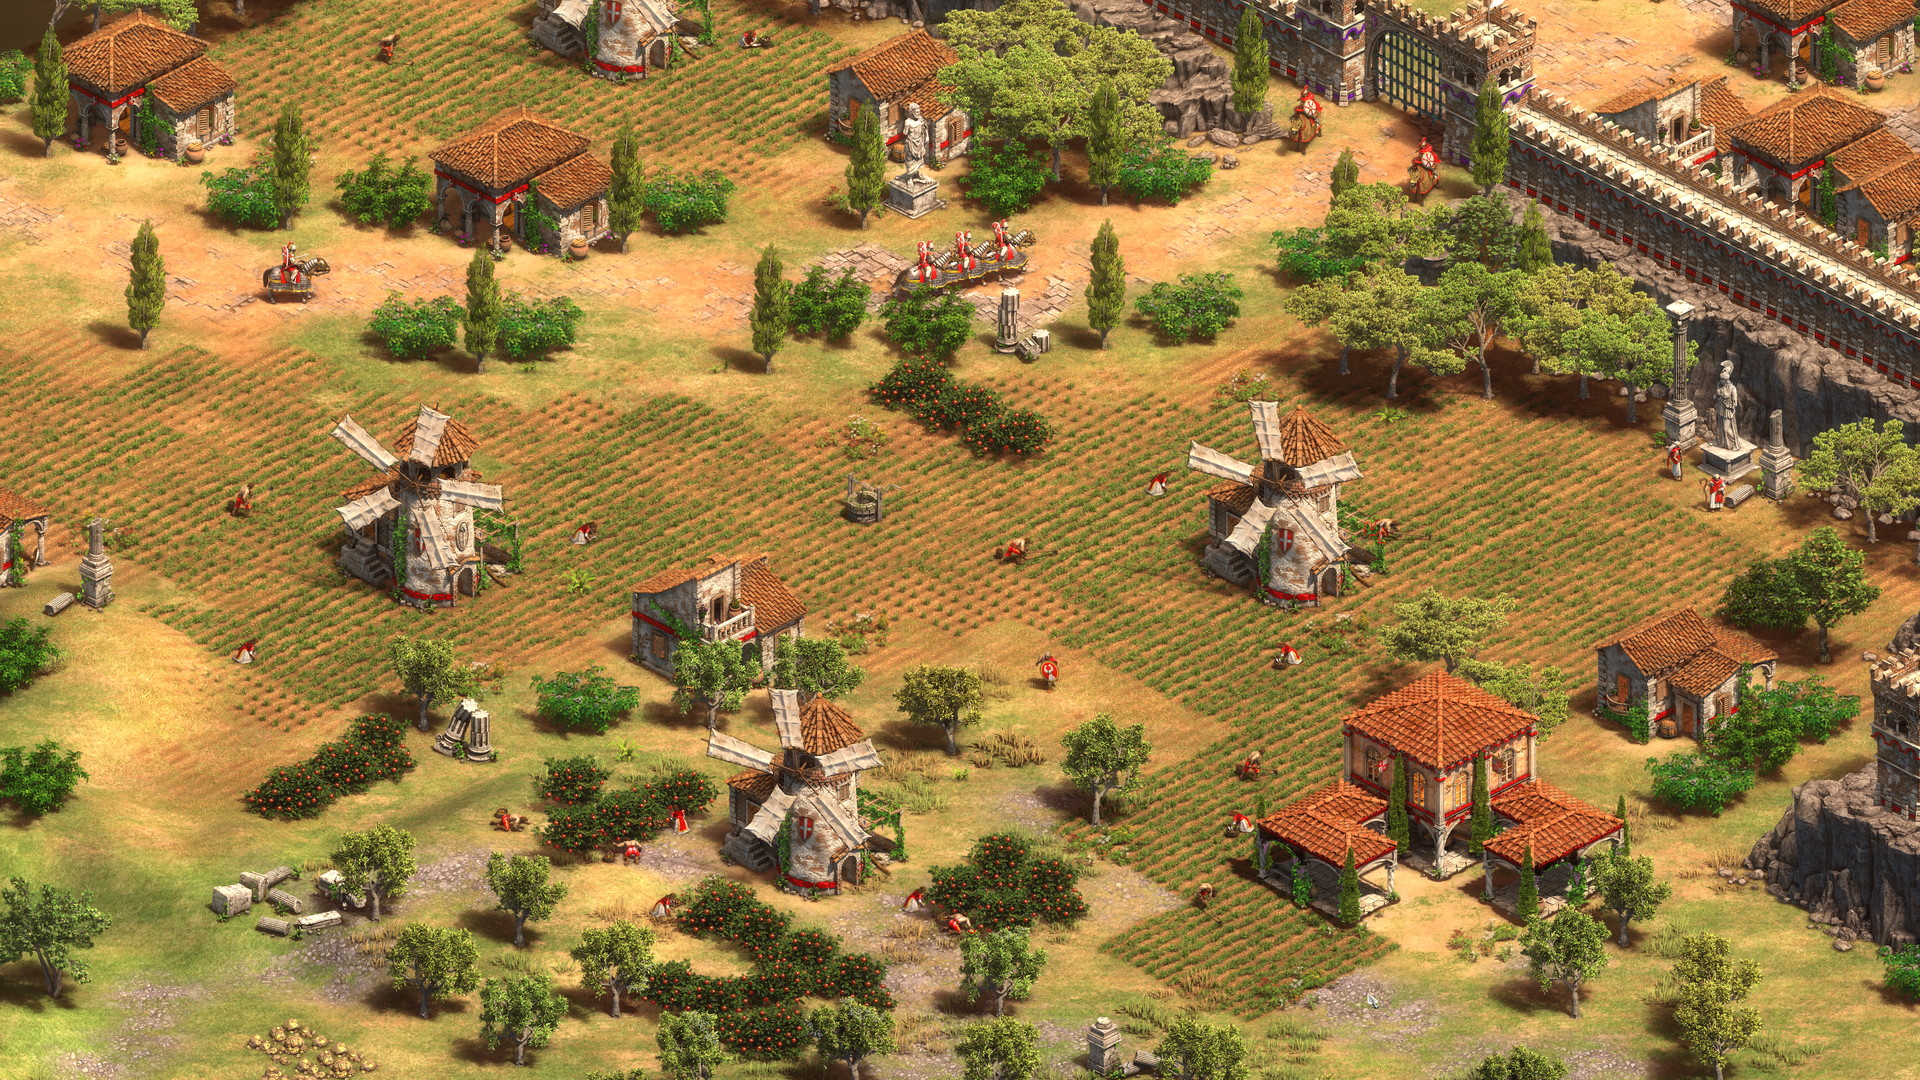 Age of Empires II: Definitive Edition - screenshot 13